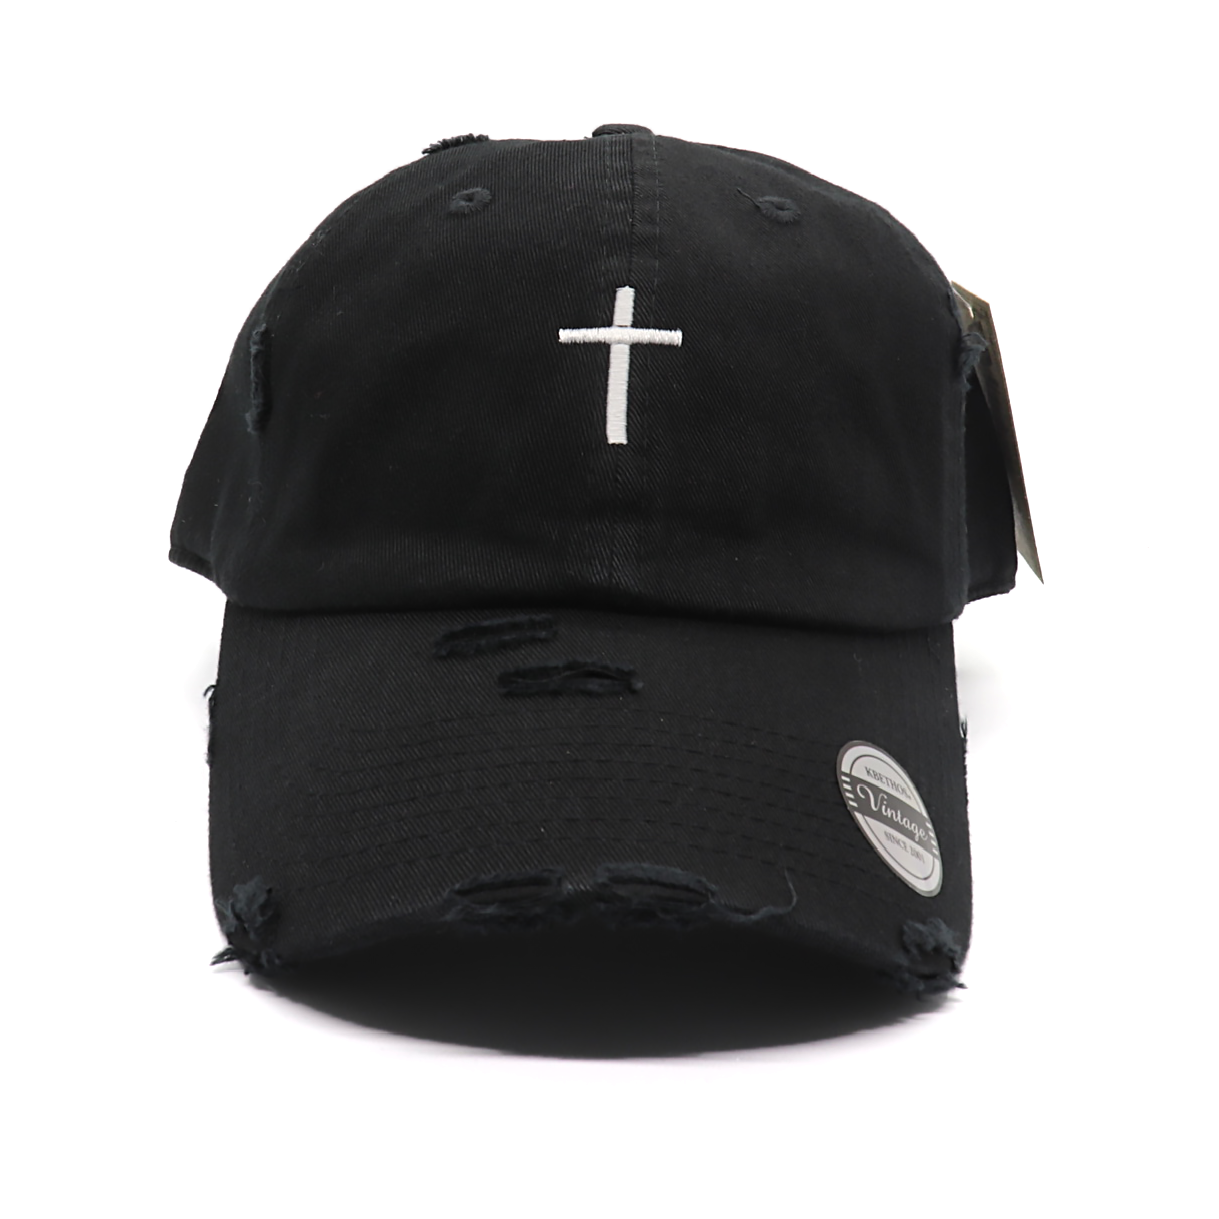 Cross Vintage Baseball Cap